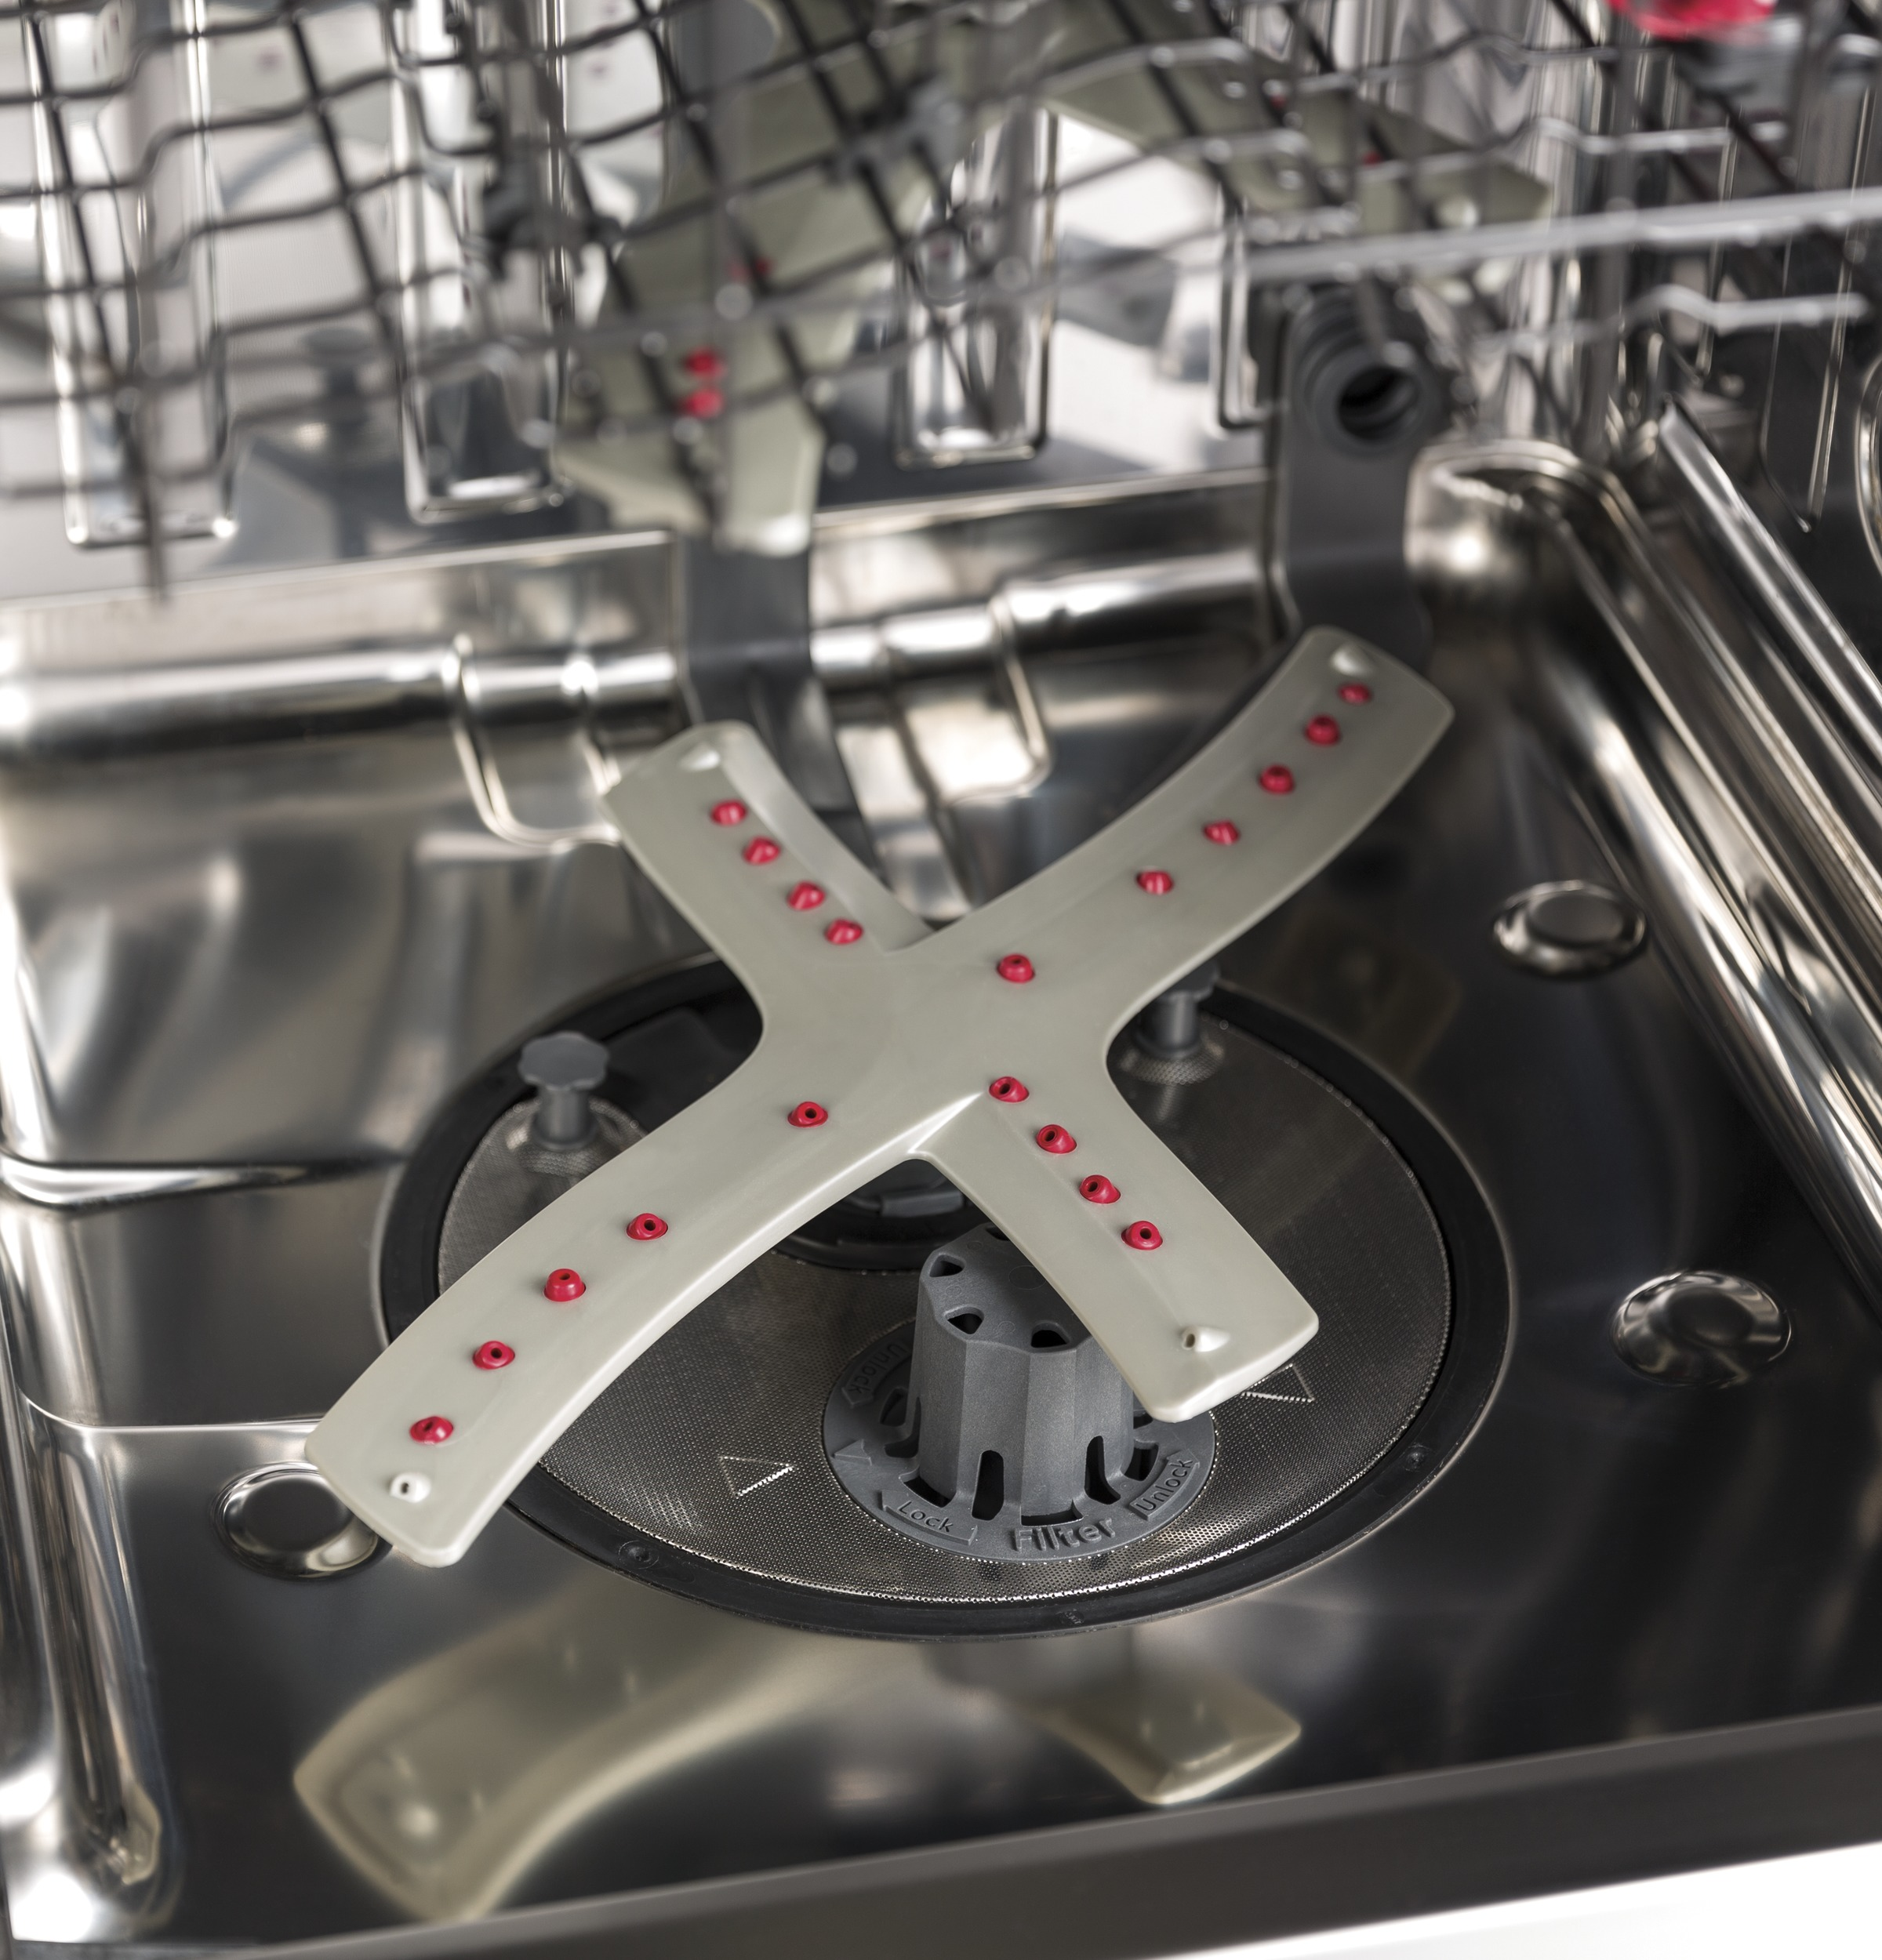 GE Profile™ Stainless Steel Interior Dishwasher with Hidden Controls on